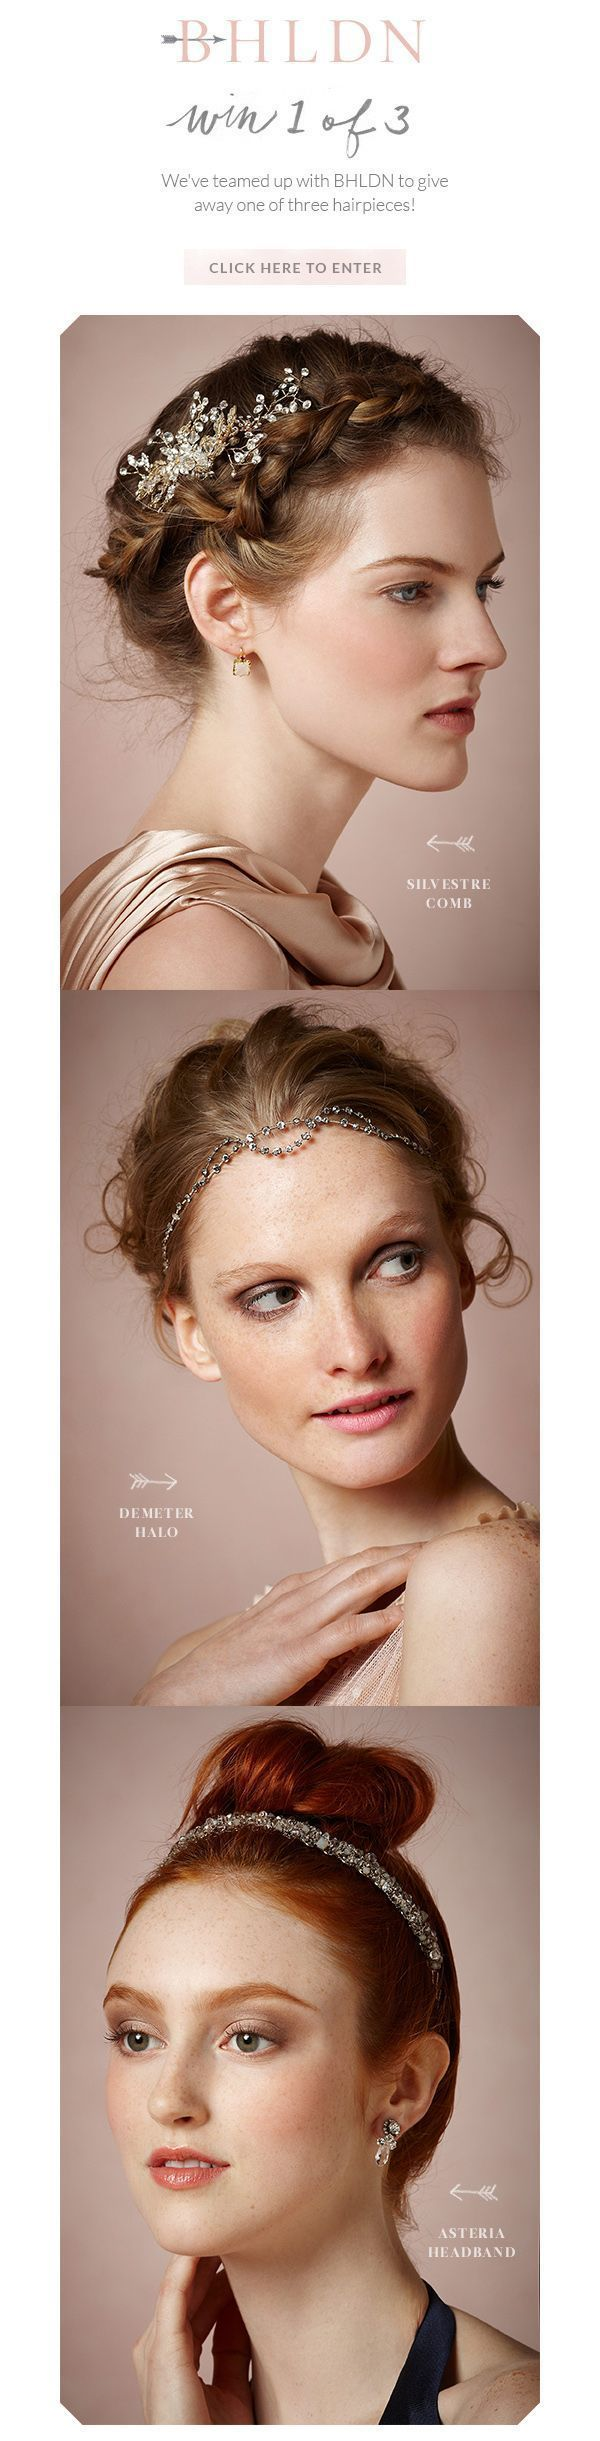 Win A BHLDN Hairpiece